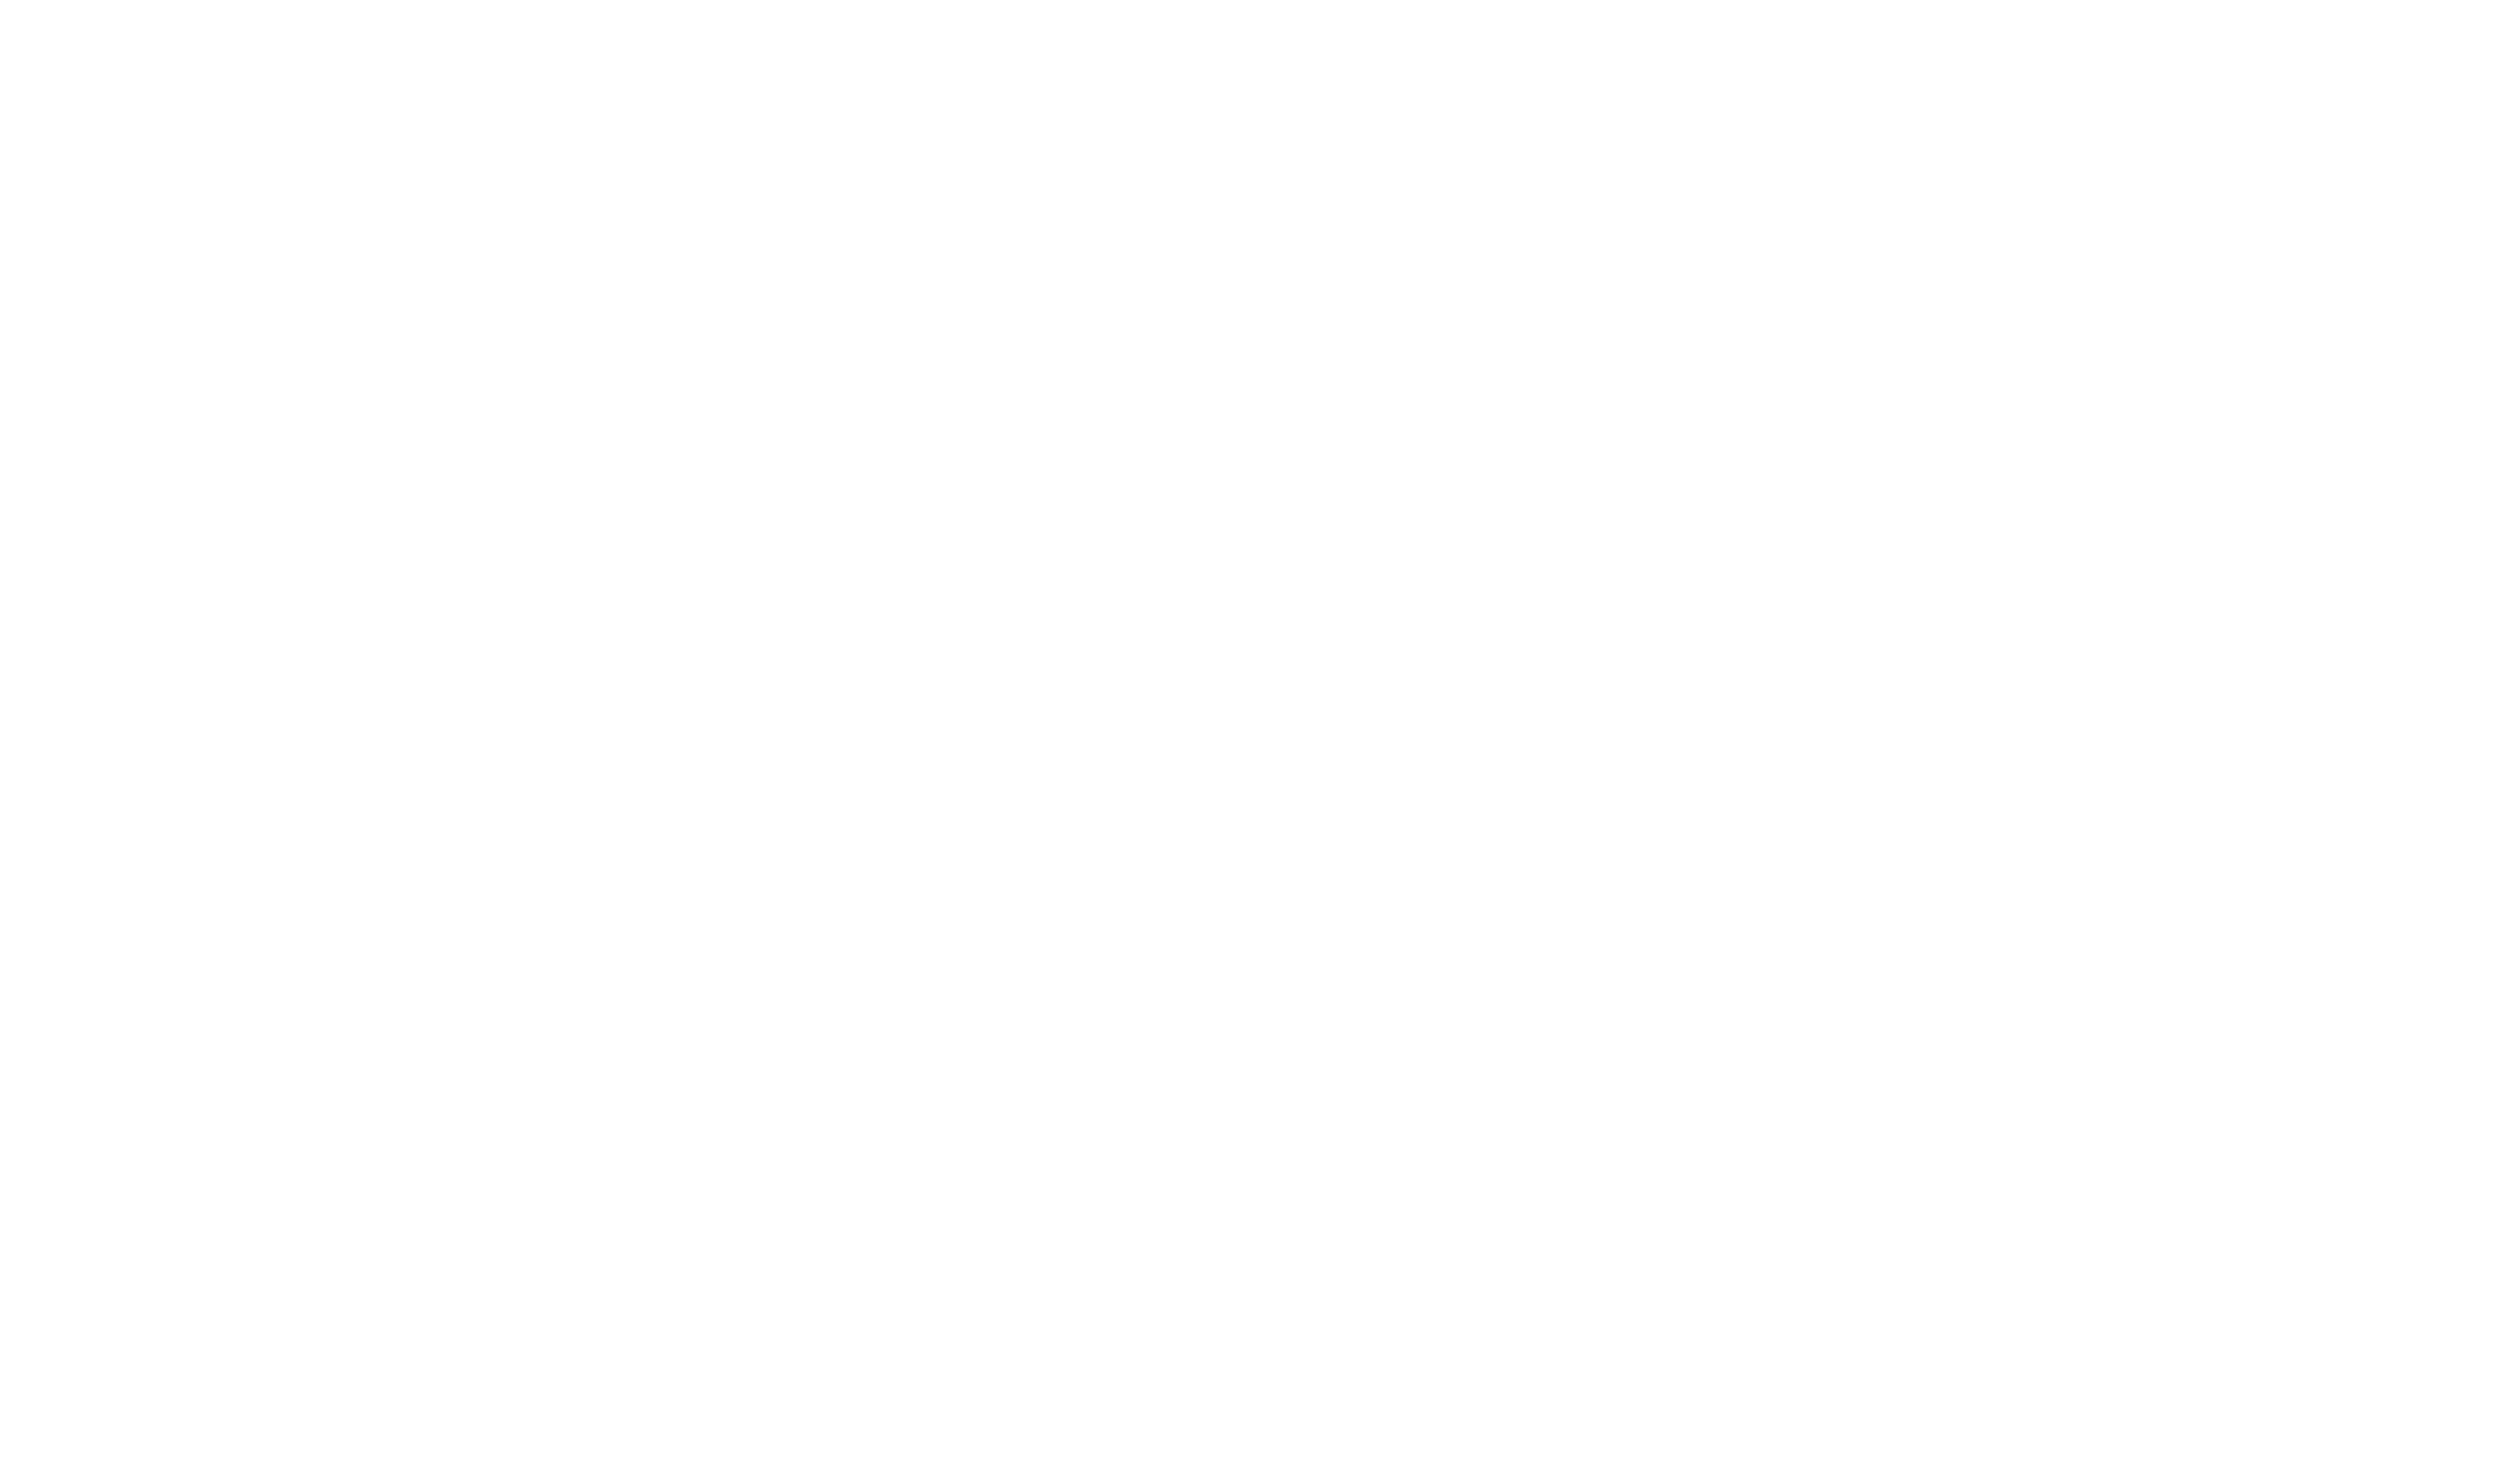 Hawthorne at Lily Flagg